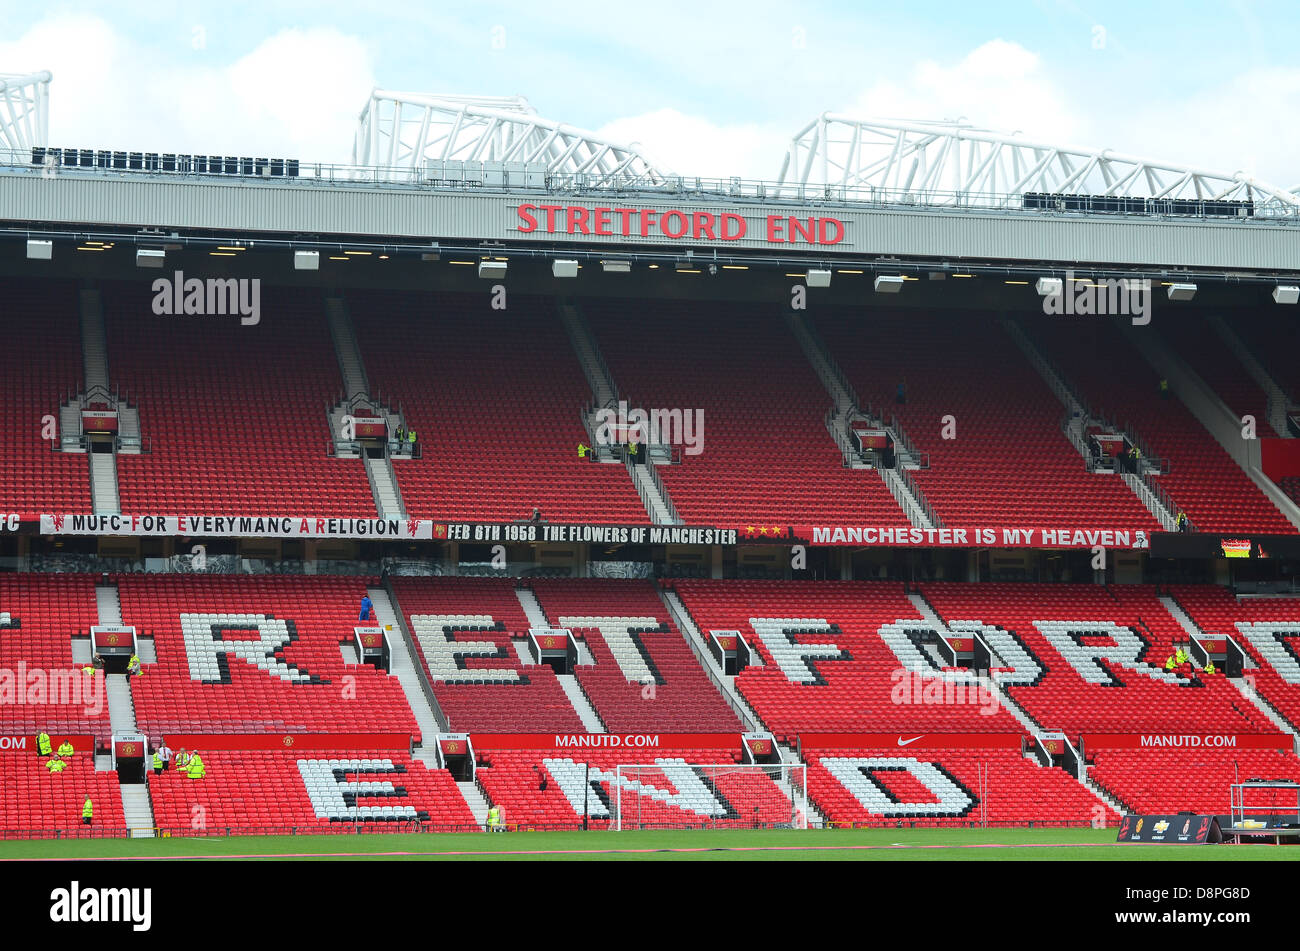 Stretford End Stand at Manchester United Football Club, Old Trafford, Manchester. - Stock Image